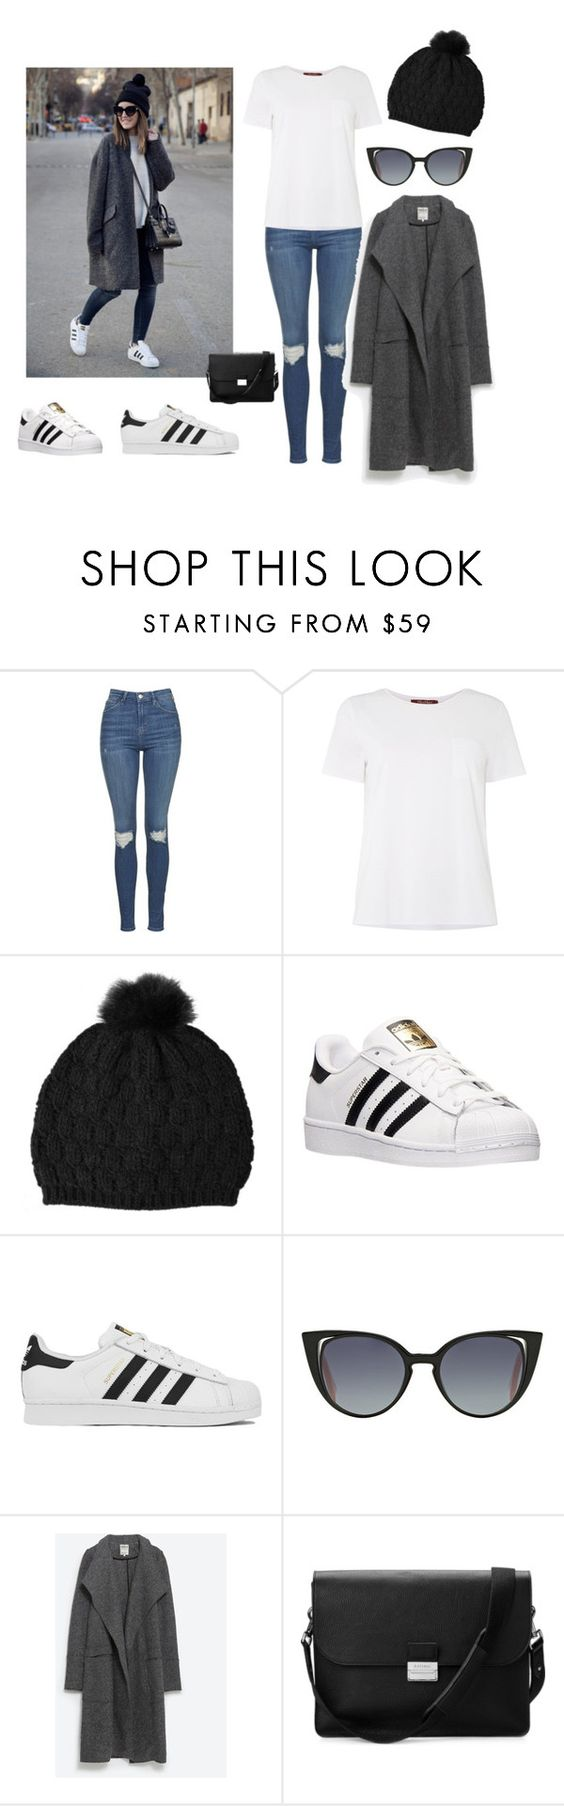 """Winter"" by annamcevoy-i ❤ liked on Polyvore featuring Topshop, MaxMara, Dolce&Gabbana, adidas, Fendi, Zara and Aspinal of London"